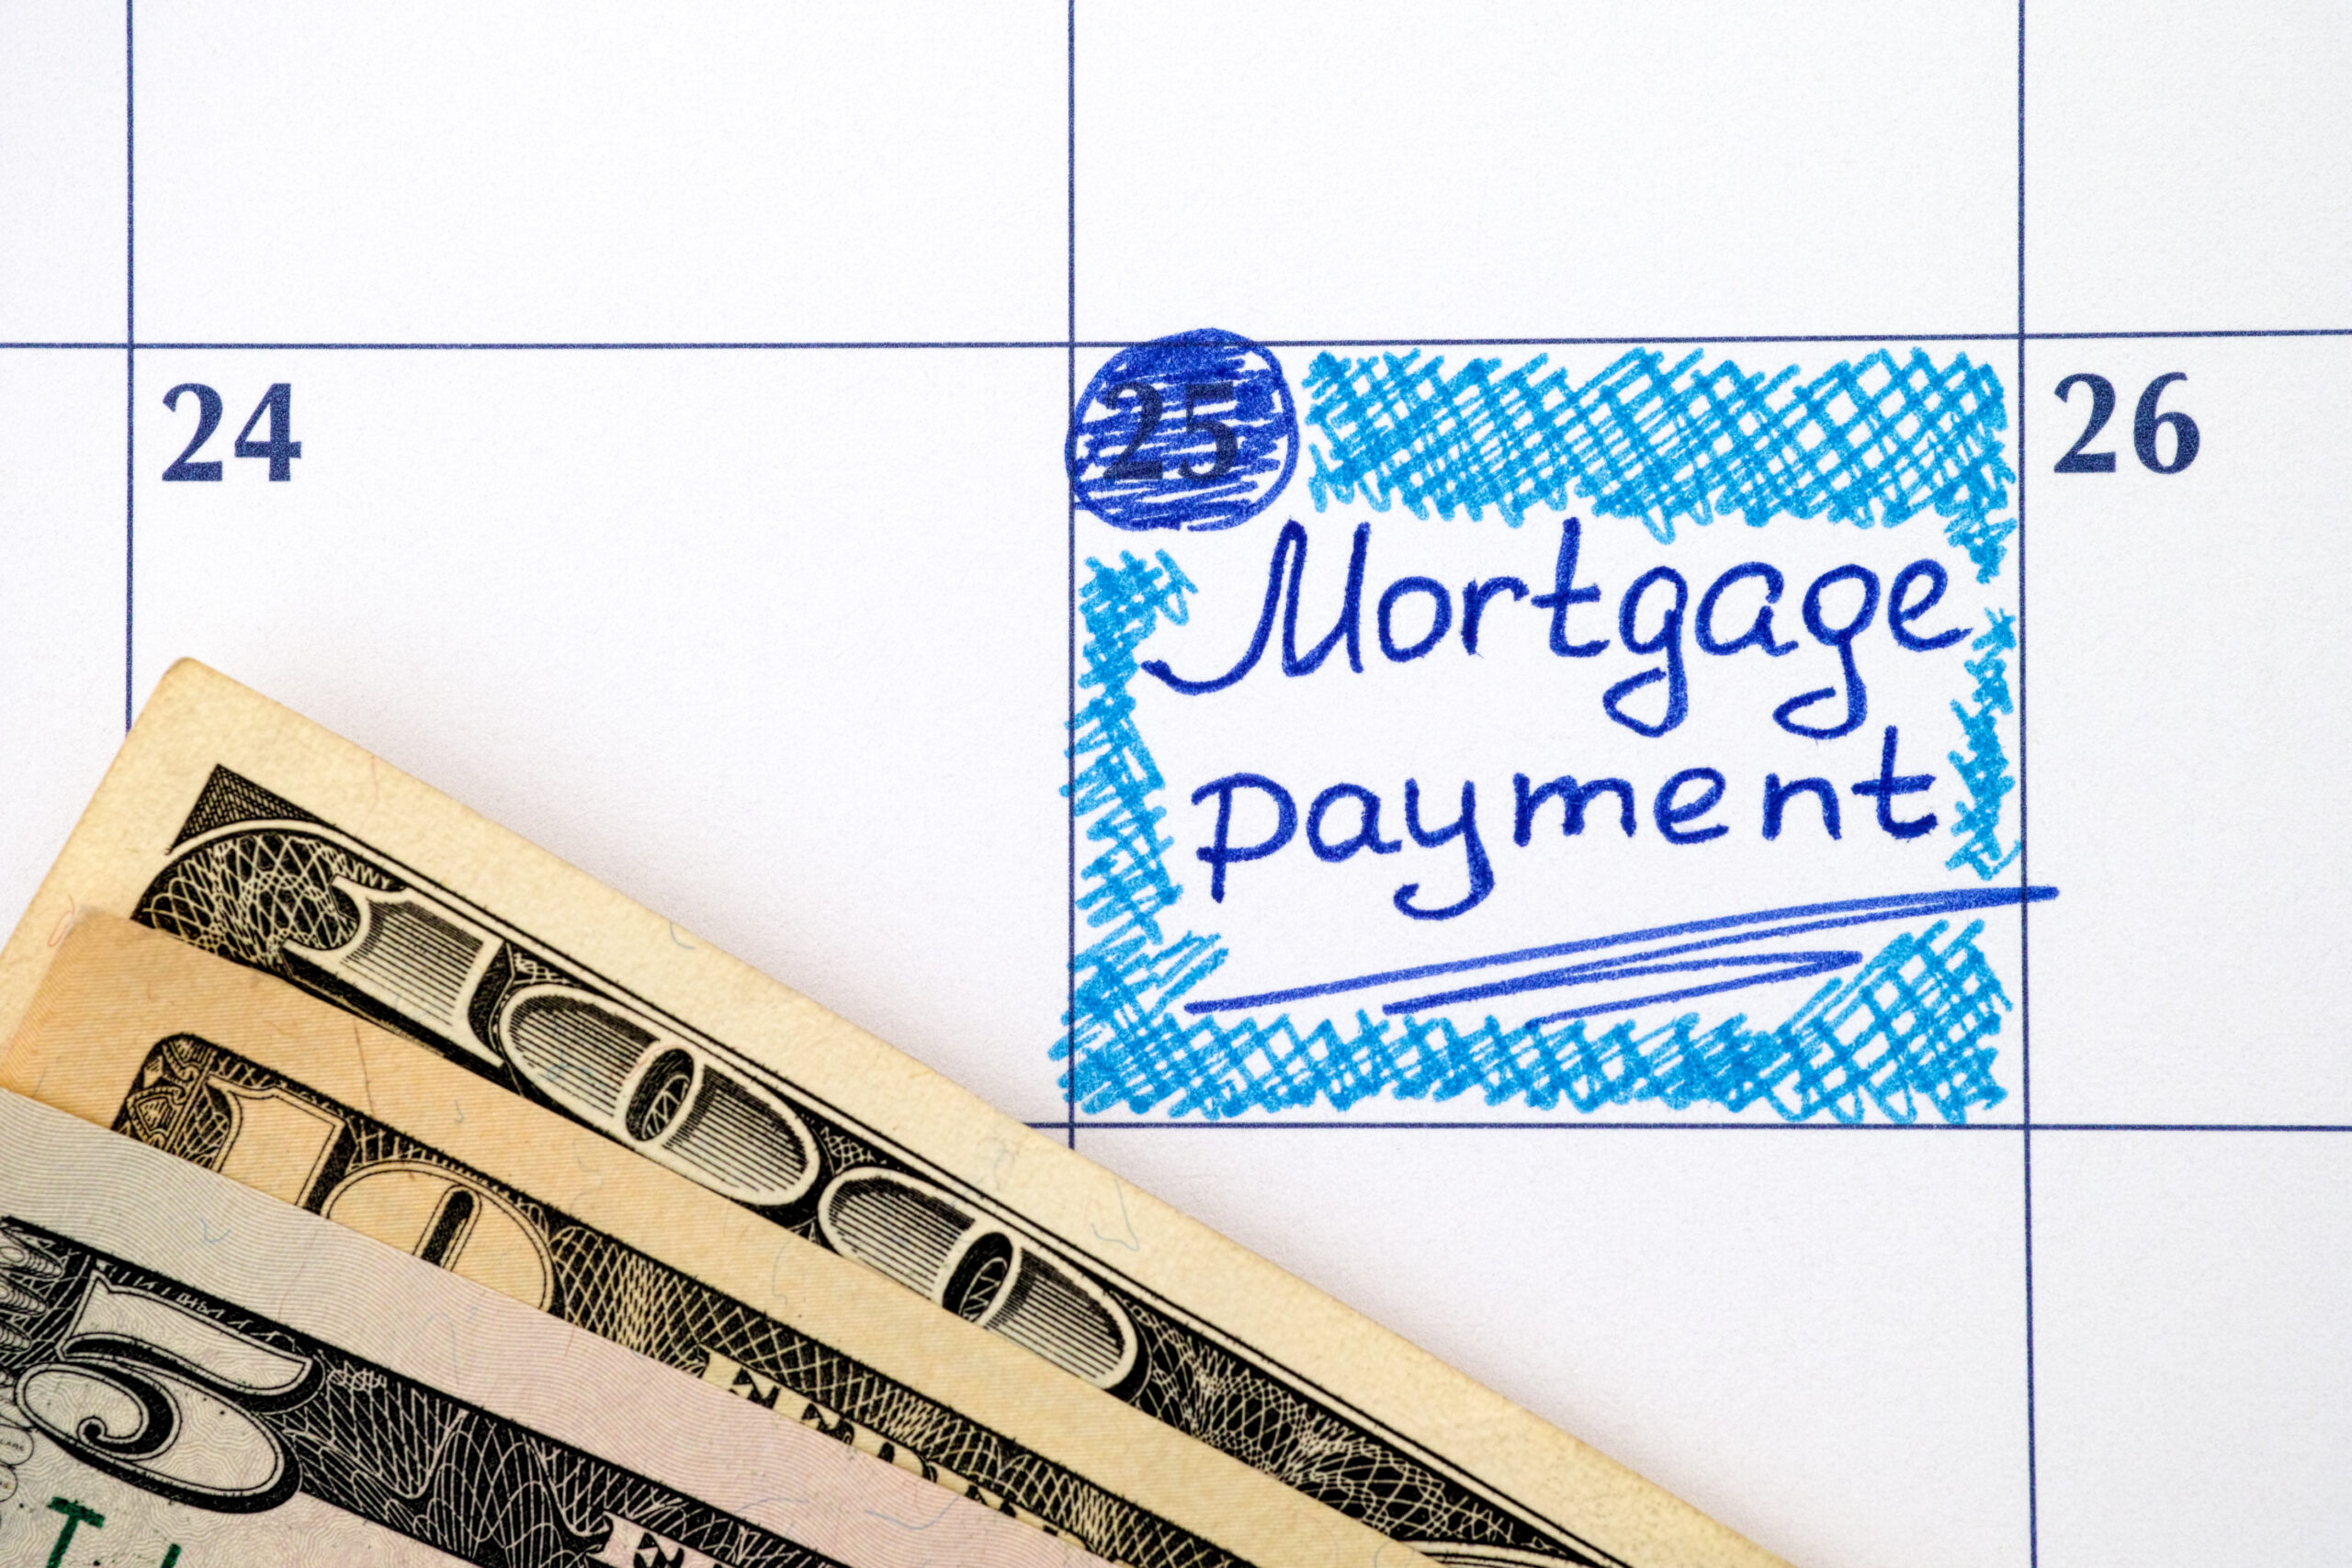 Mortgage Payment Label on Calendar with Cash